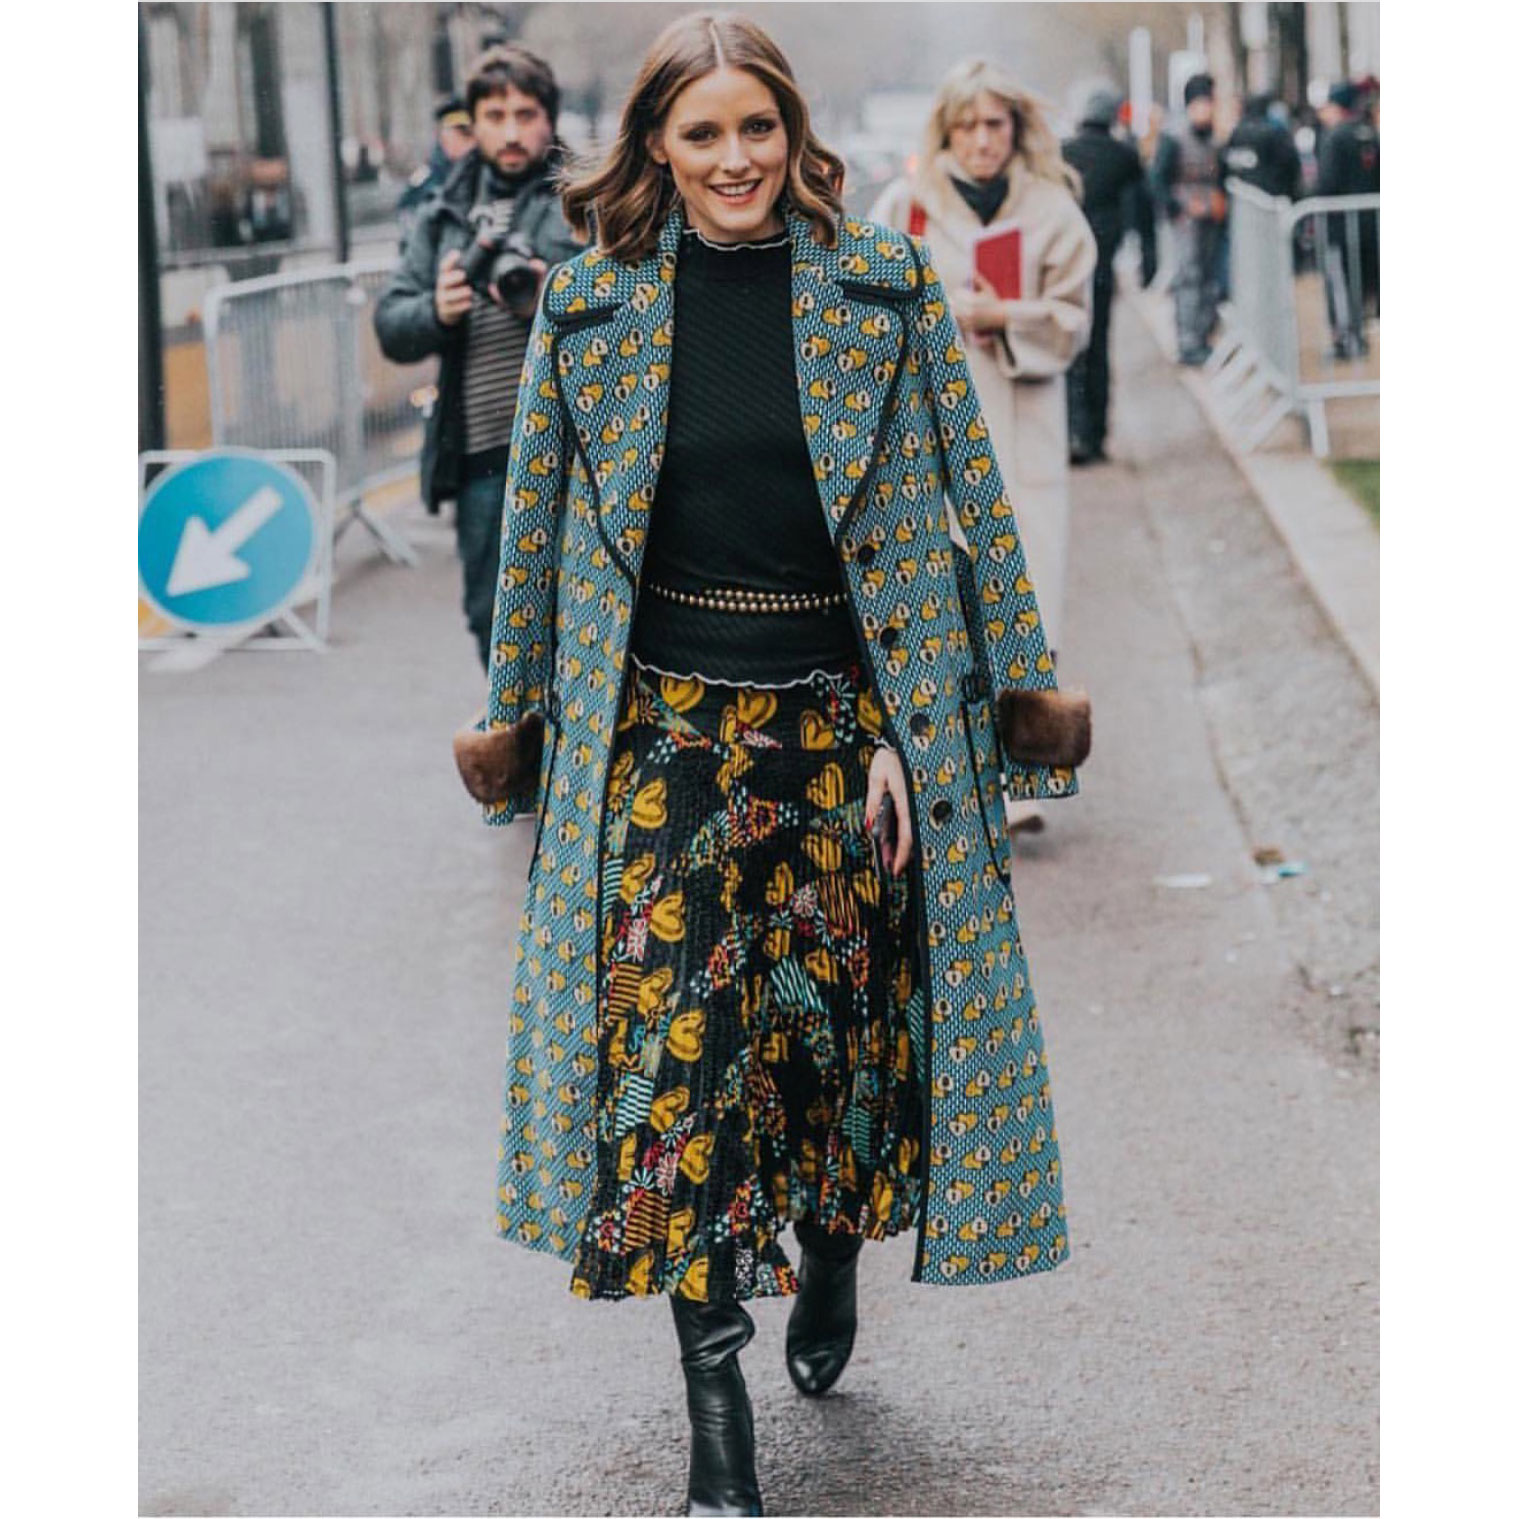 Olivia Palermo Mixes It Up: Get her Celebrity Look for Less!